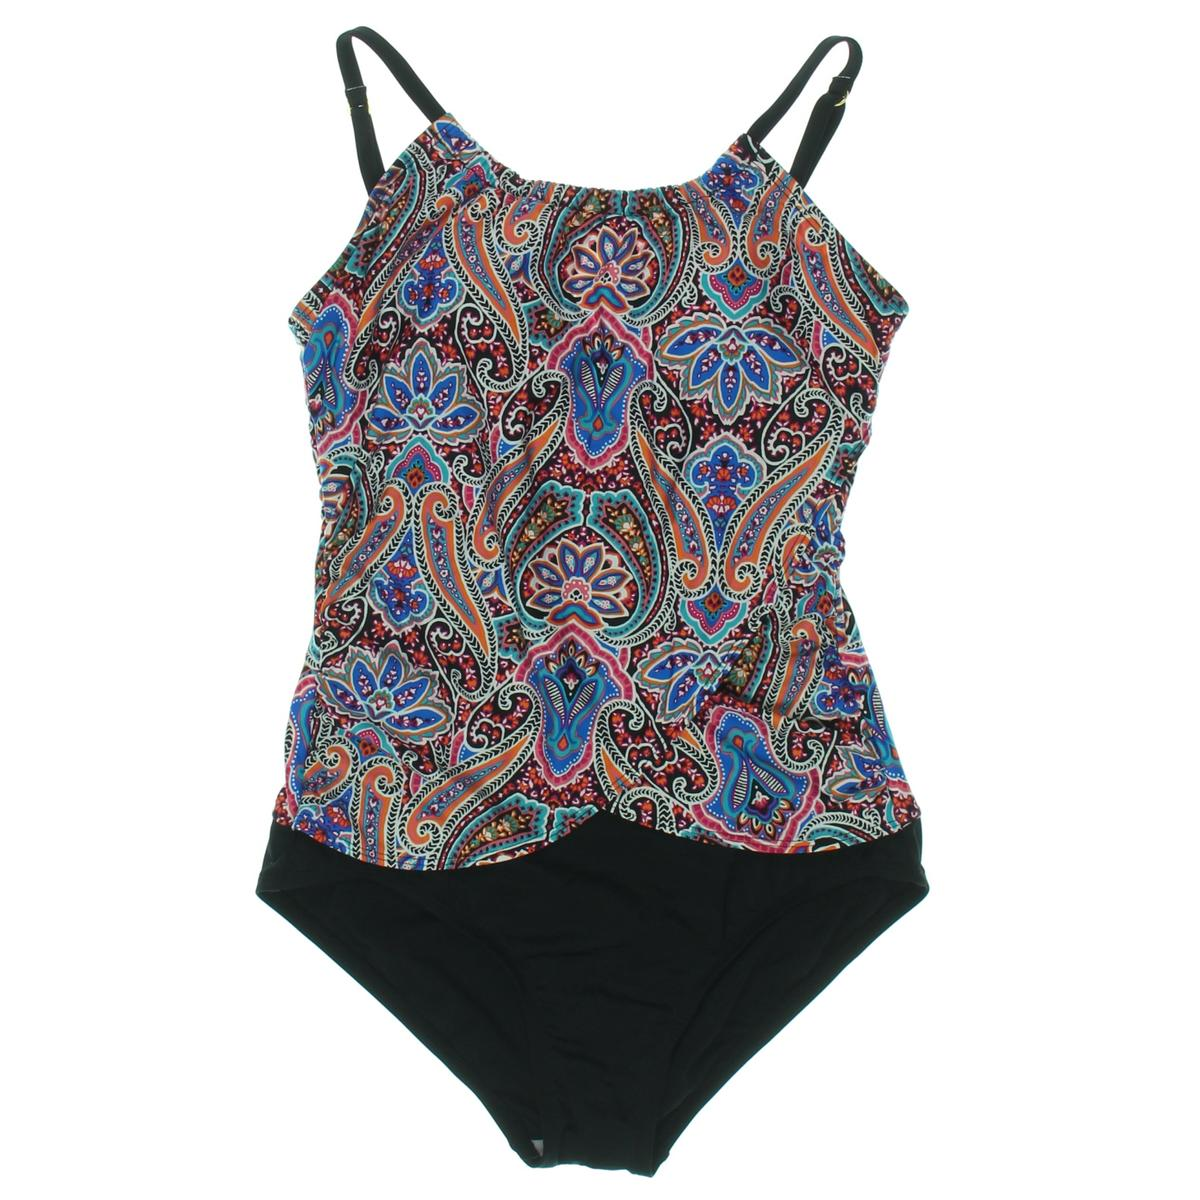 Jantzen Womens High Neck Paisley One-Piece Swimsuit